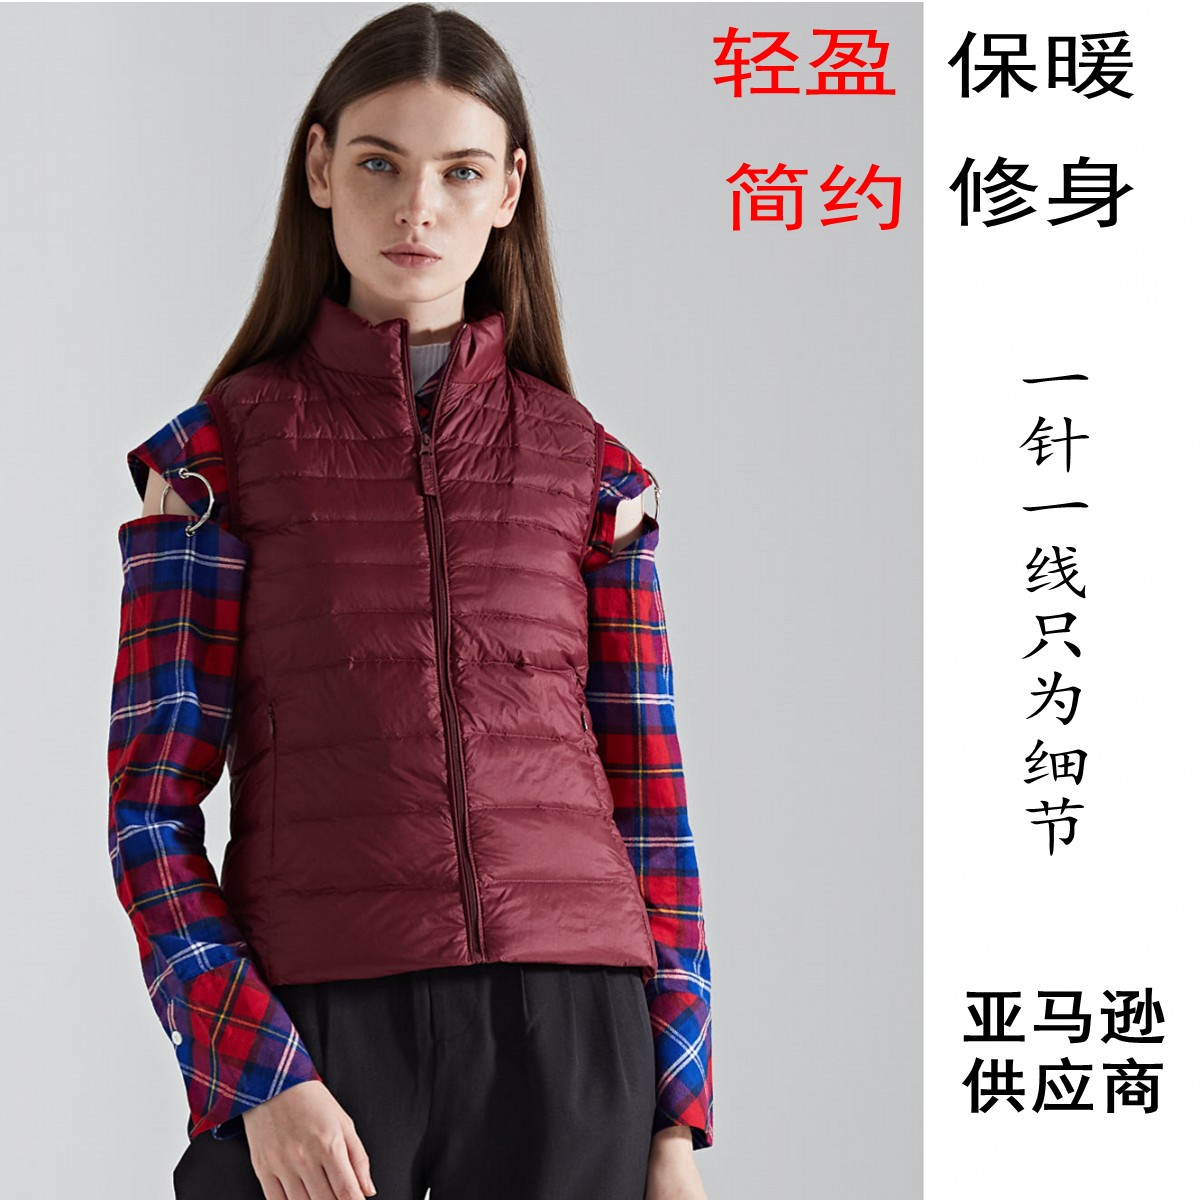 Anti season promotion womens down vest, white duck down vest, womens inner tank, girls slim fit and sleeveless jacket inside and outside